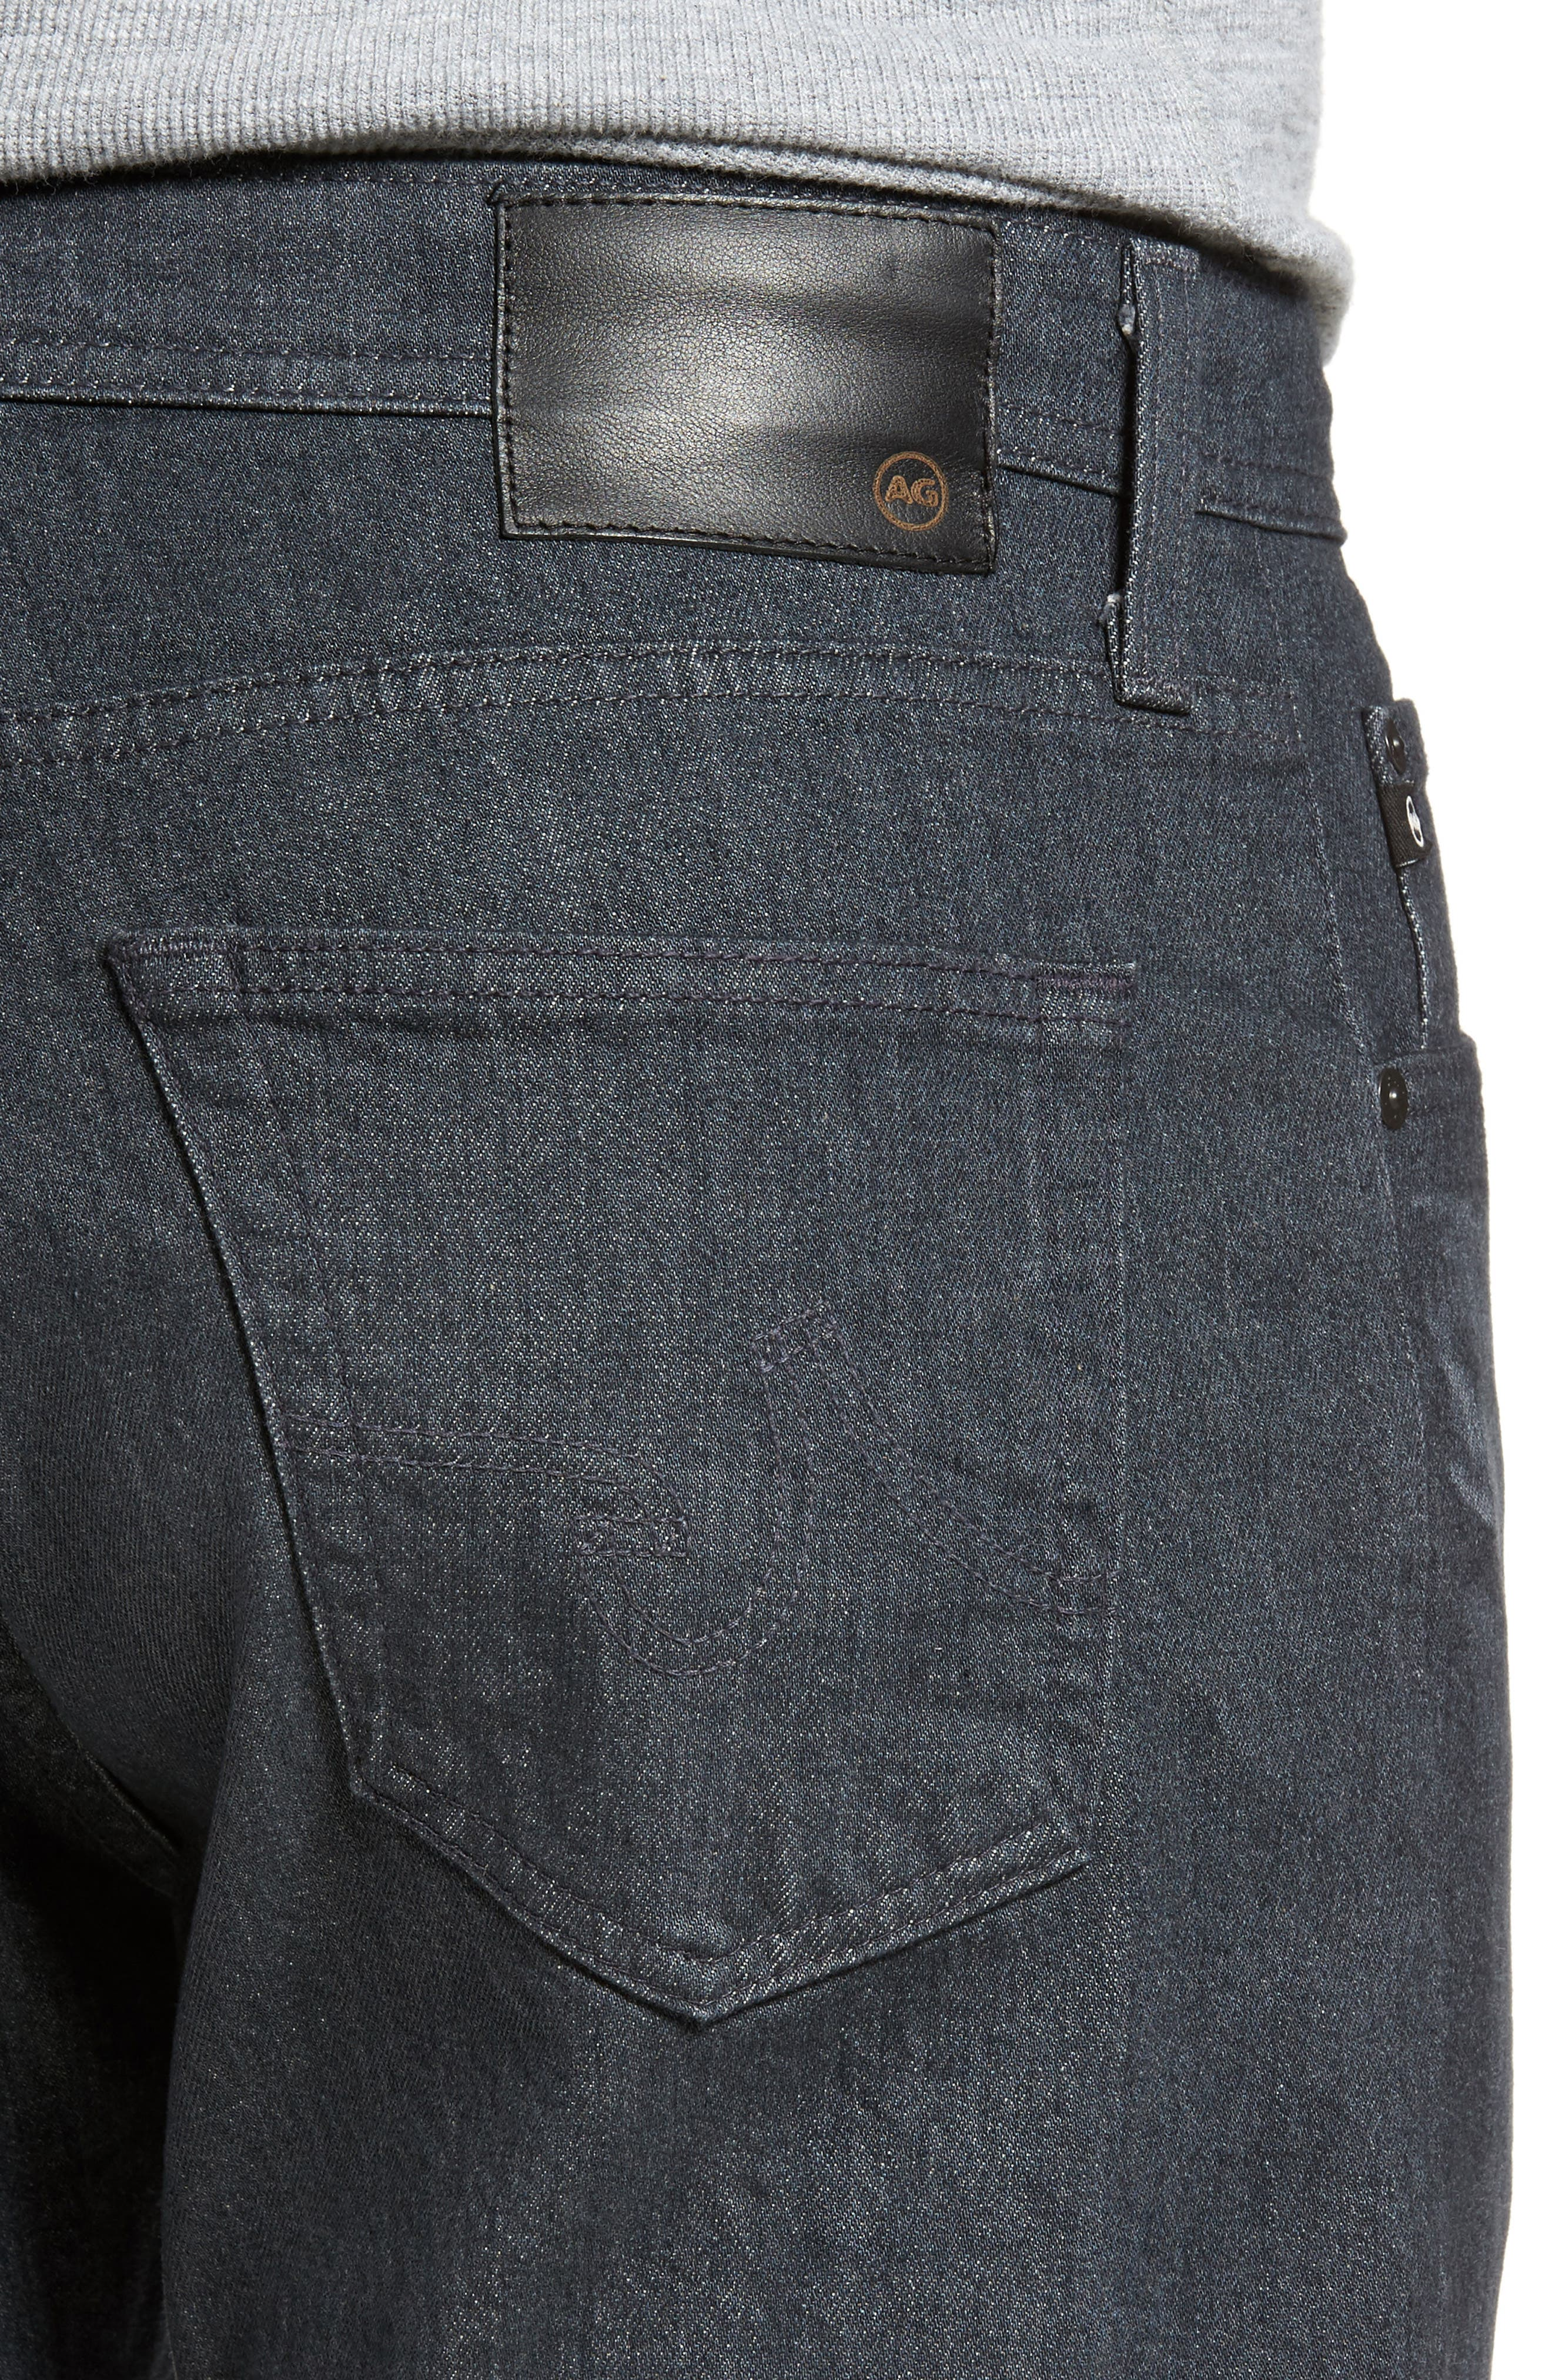 Ives Straight Fit Jeans,                             Alternate thumbnail 4, color,                             015